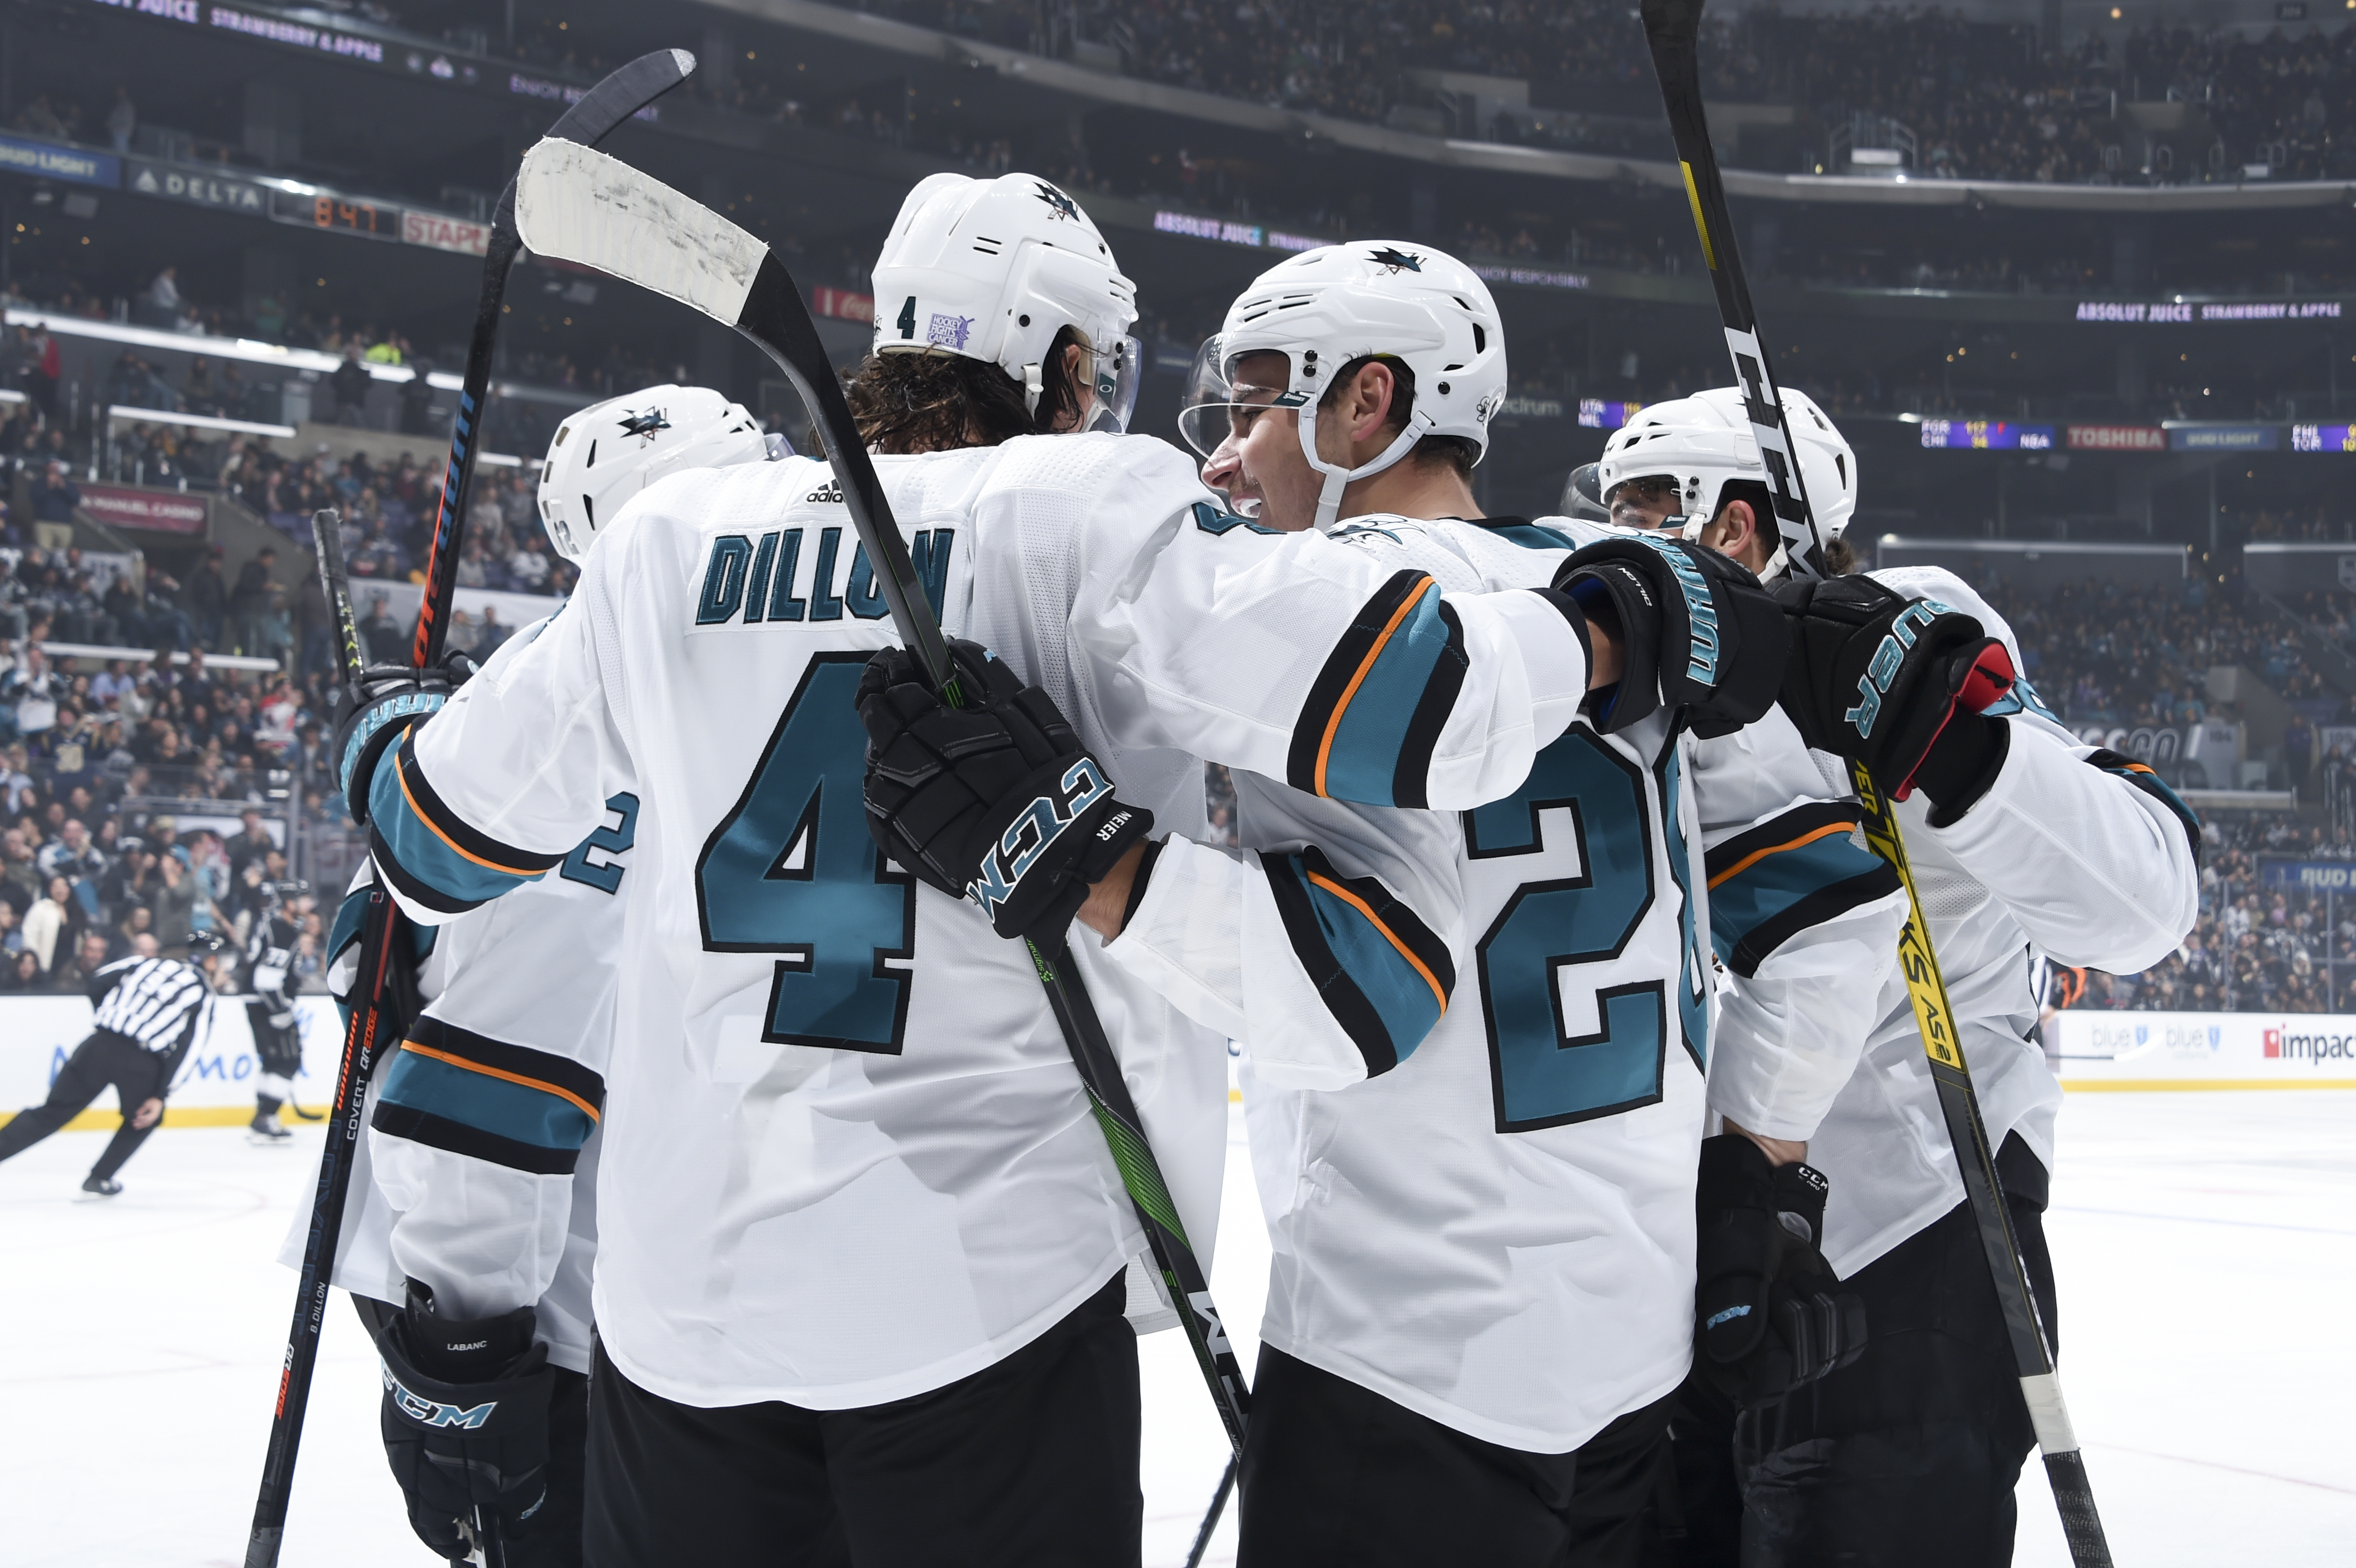 Timo Meier #28 of the San Jose Sharks celebrates his goal with teammates during the second period against the Los Angeles Kings at STAPLES Center on November 25, 2019 in Los Angeles, California.